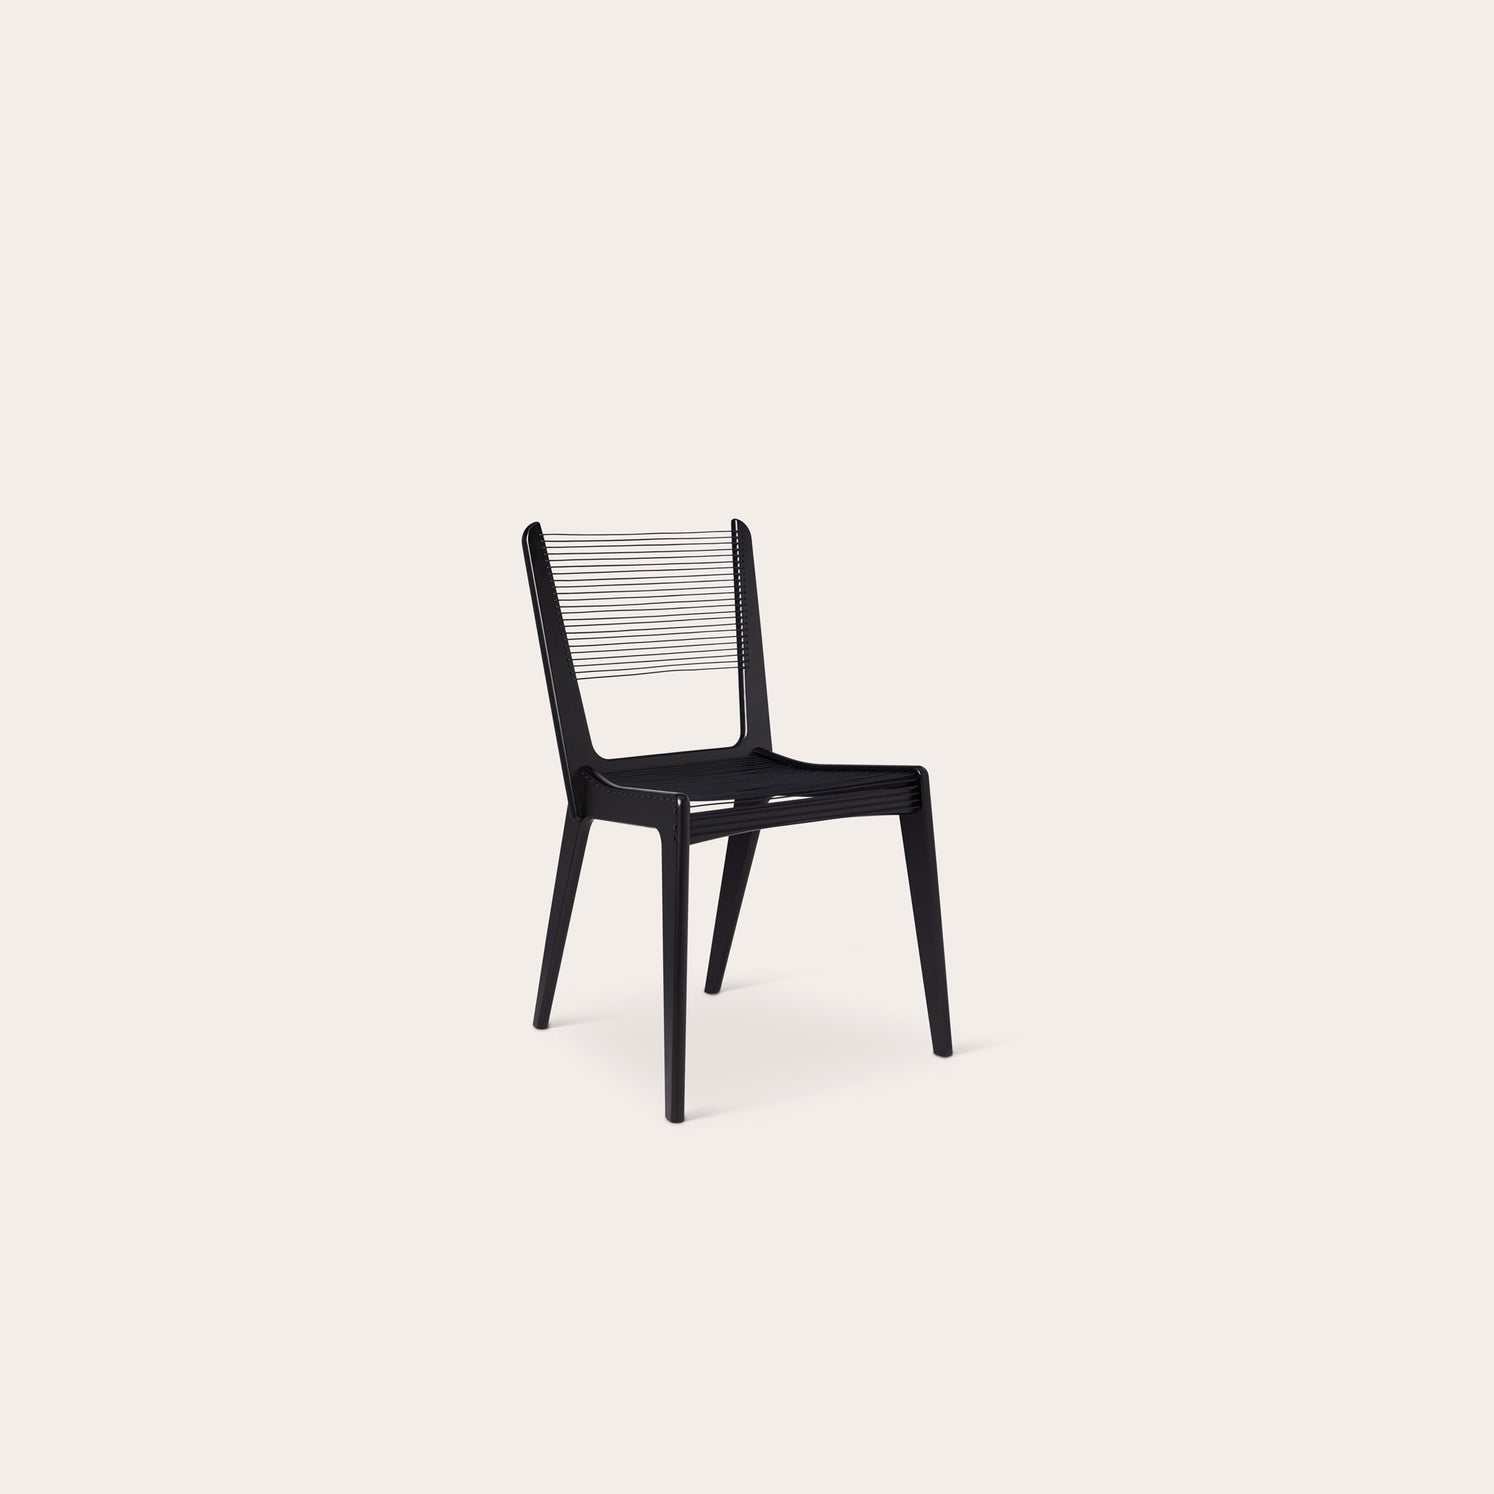 Cord Chair Dining Chairs Jacques Guillon Designer Furniture Sku: 828-120-10003